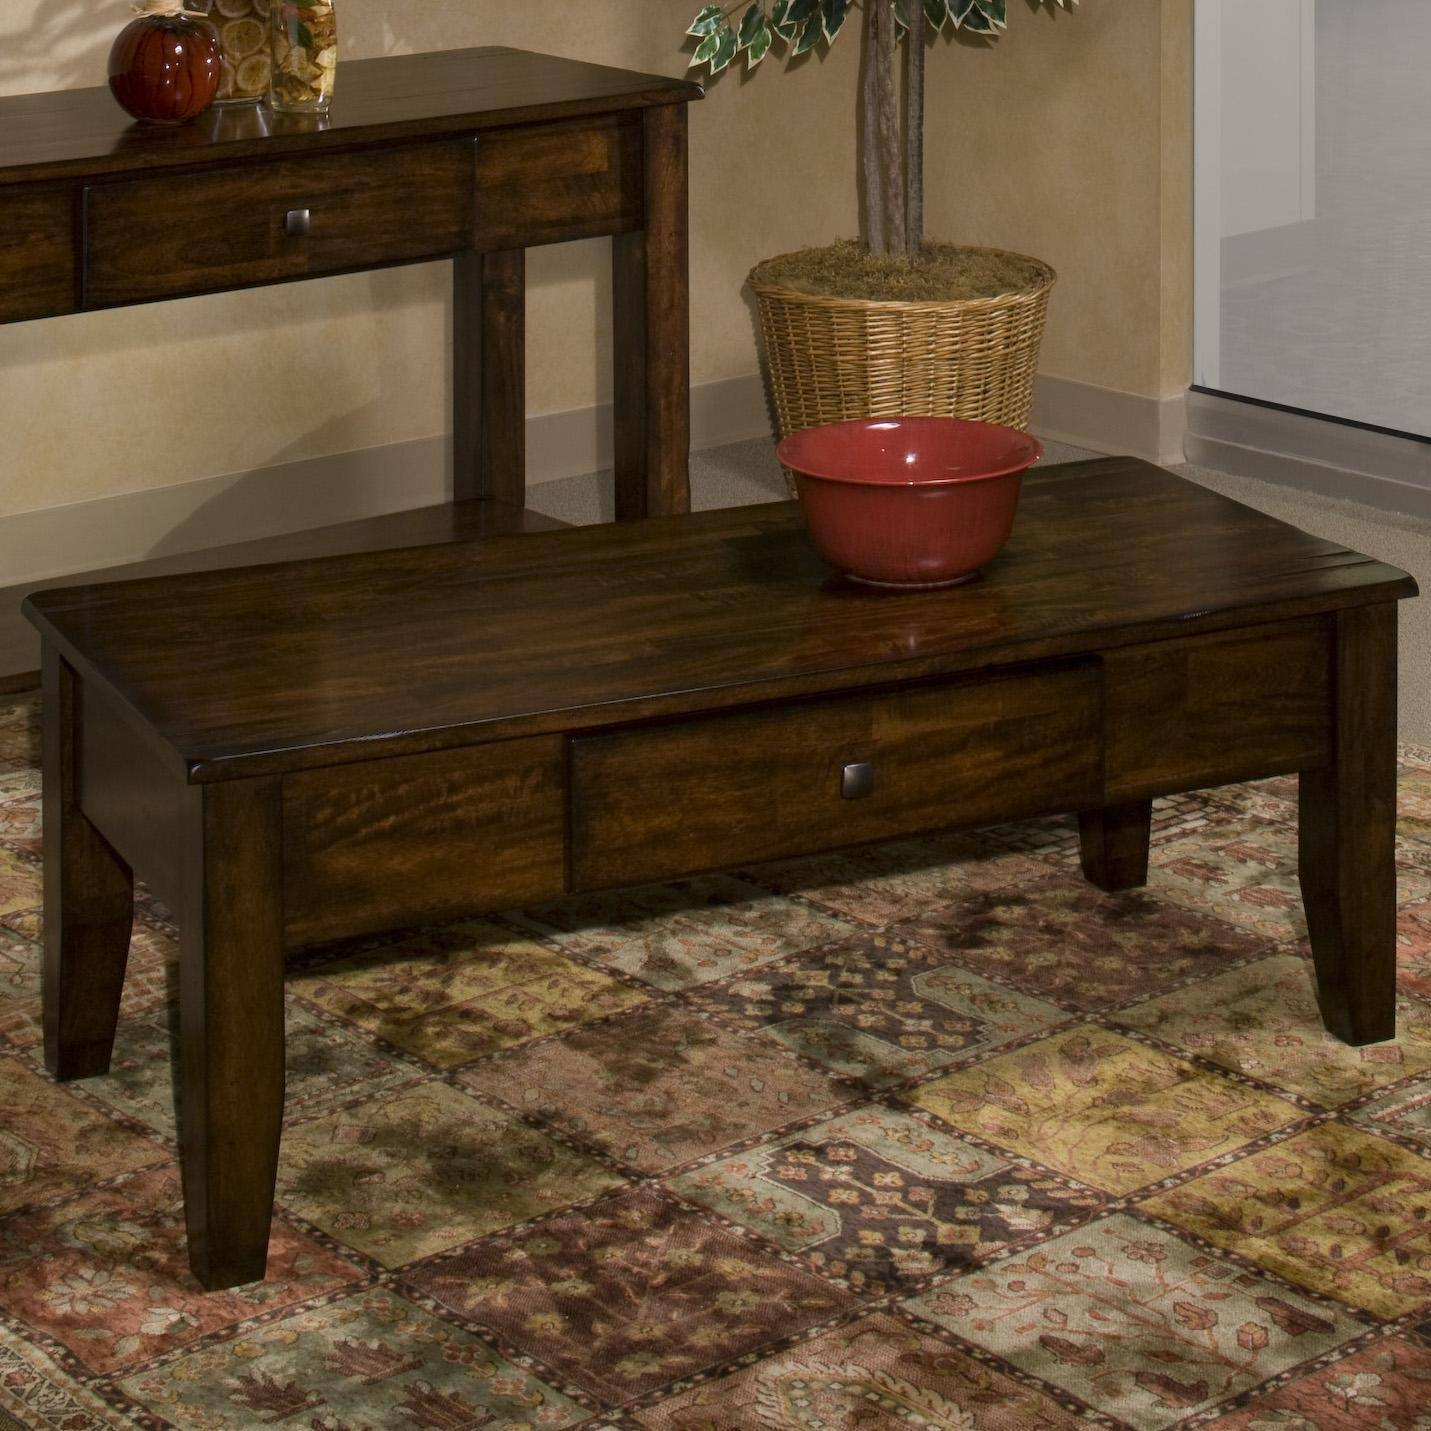 Intercon Kona Mango Wood Coffee Table - Wayside Furniture with regard to Mango Wood Coffee Tables (Image 11 of 30)